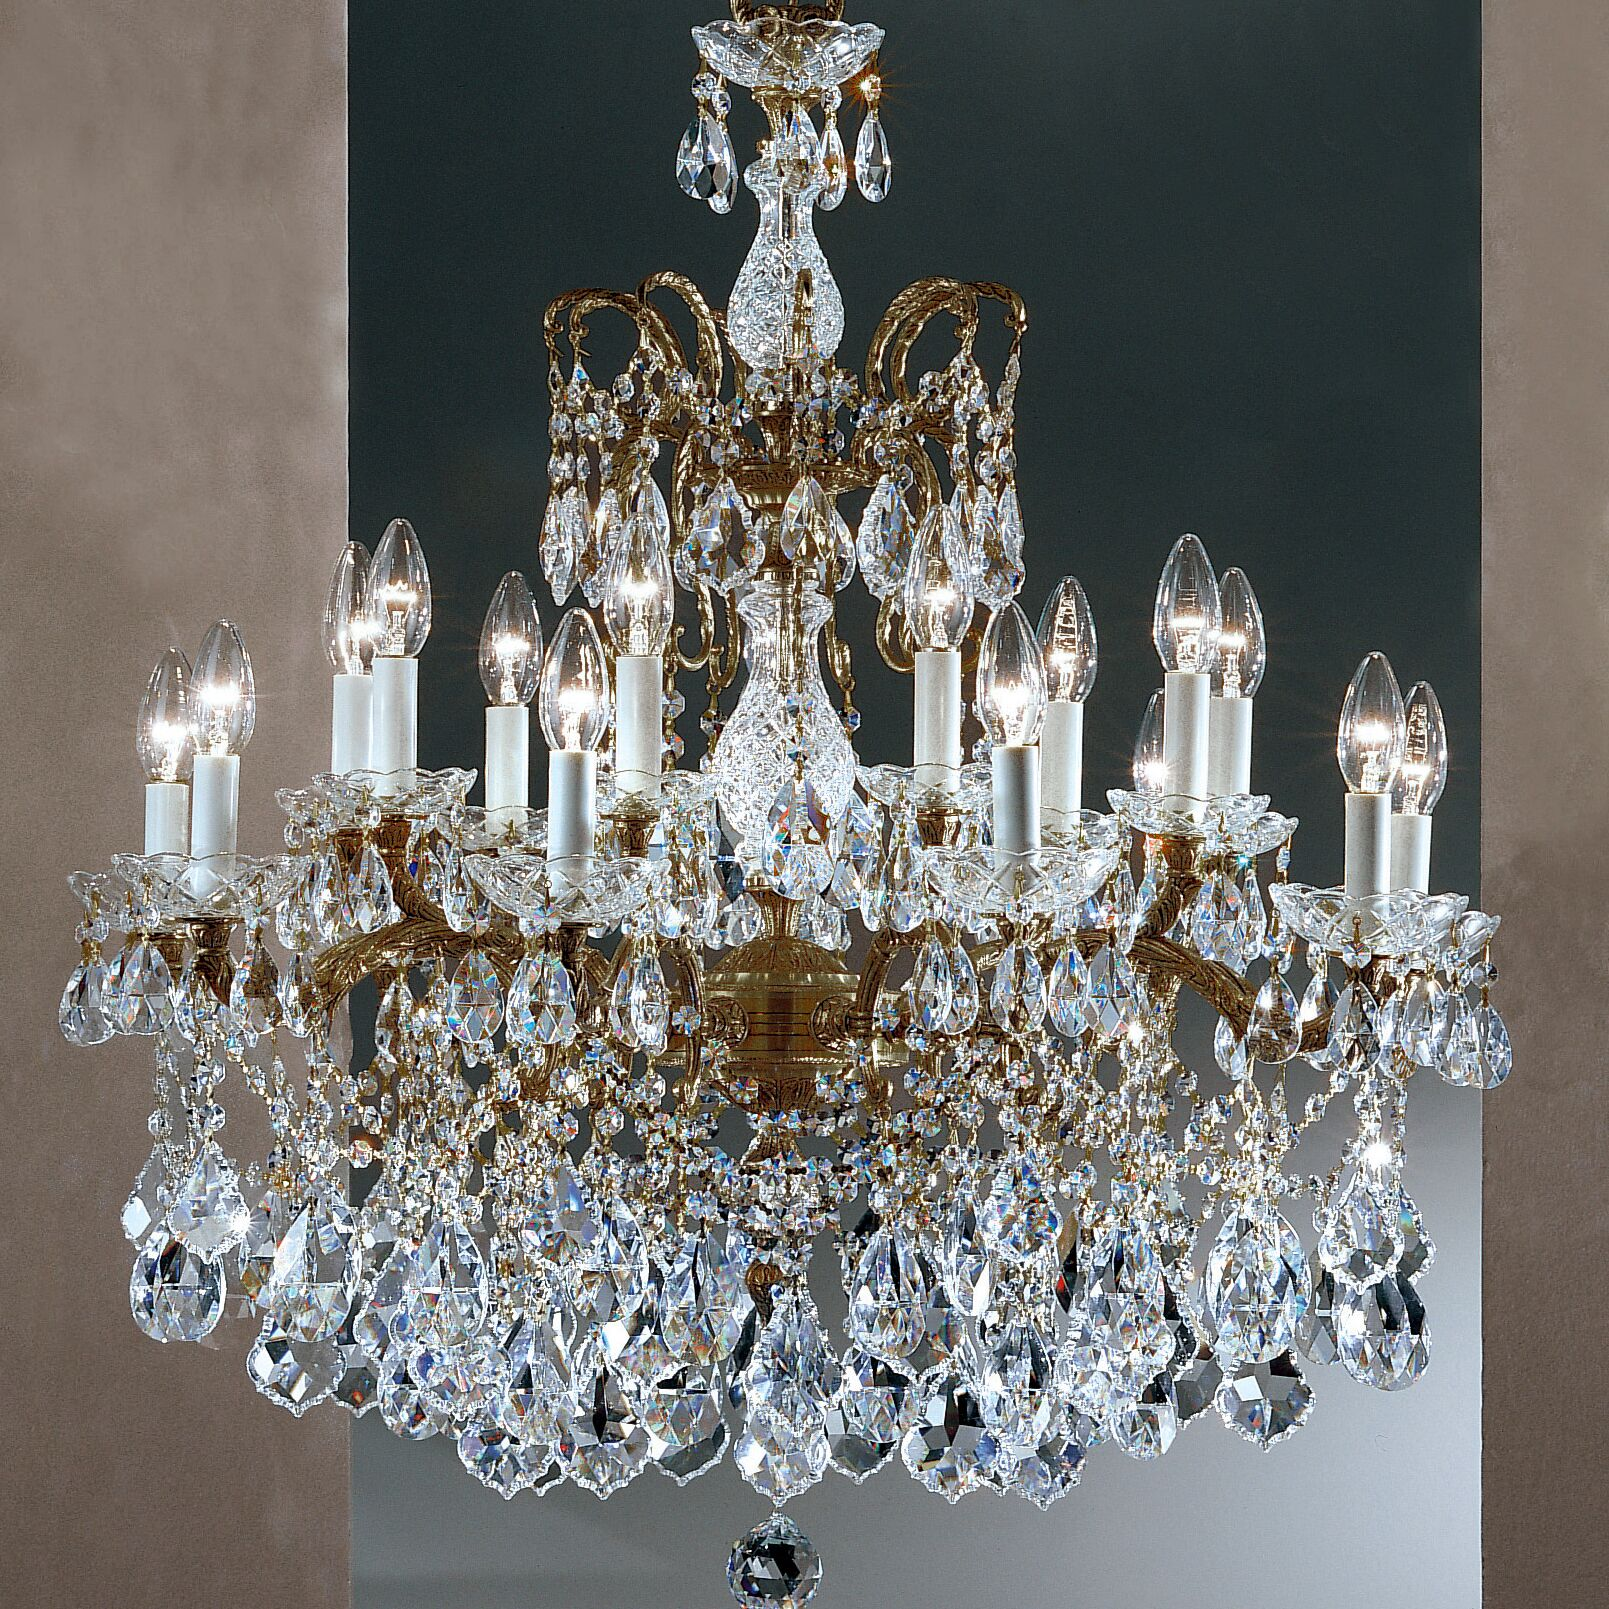 Madrid Imperial 18-Light Candle Style Chandelier Finish: Roman Bronze, Crystal Type: Crystalique